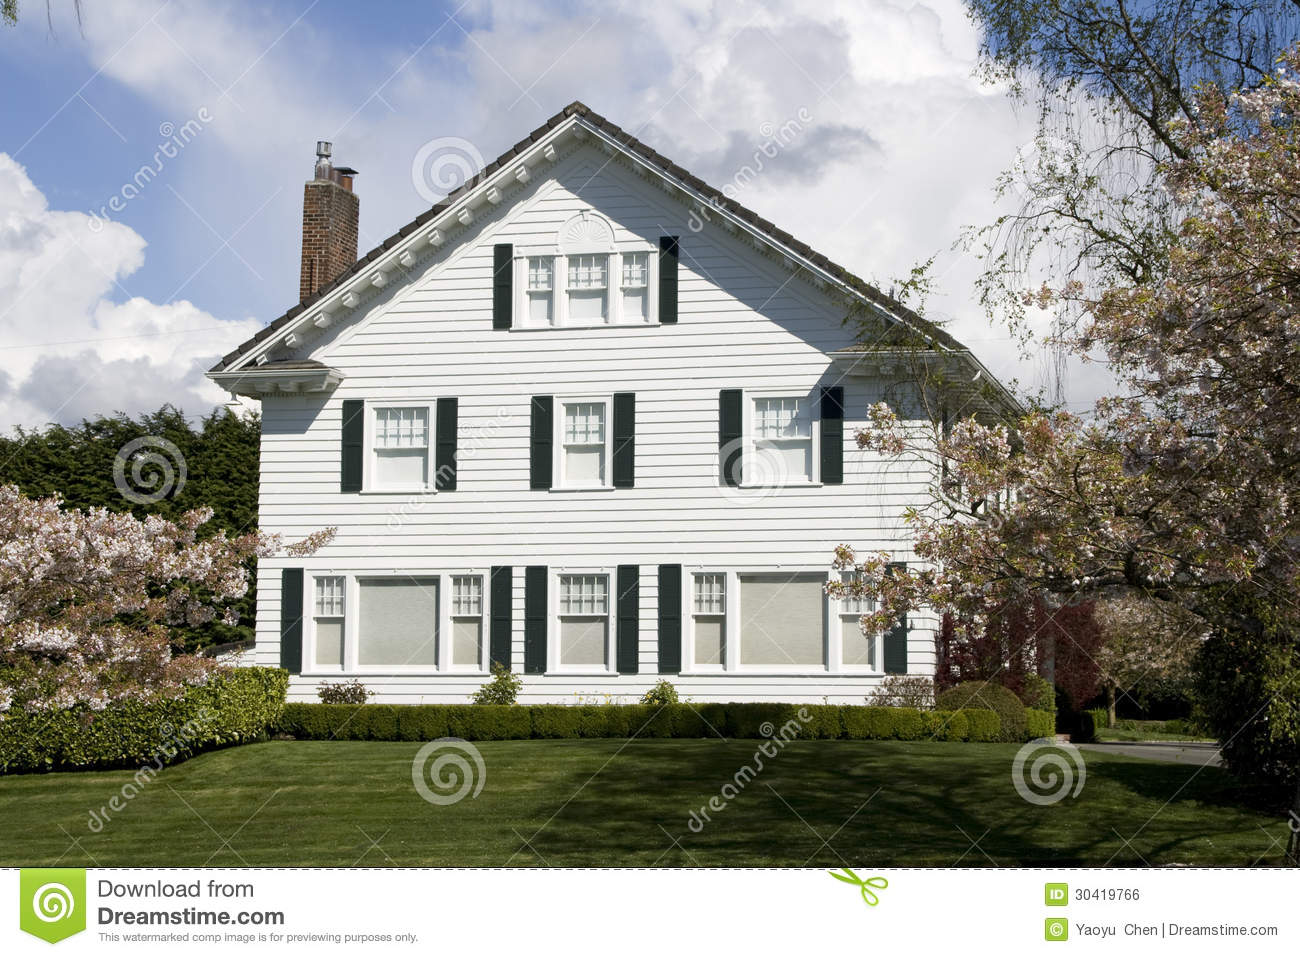 Nice white house with simple design royalty free stock for Simple house but elegant